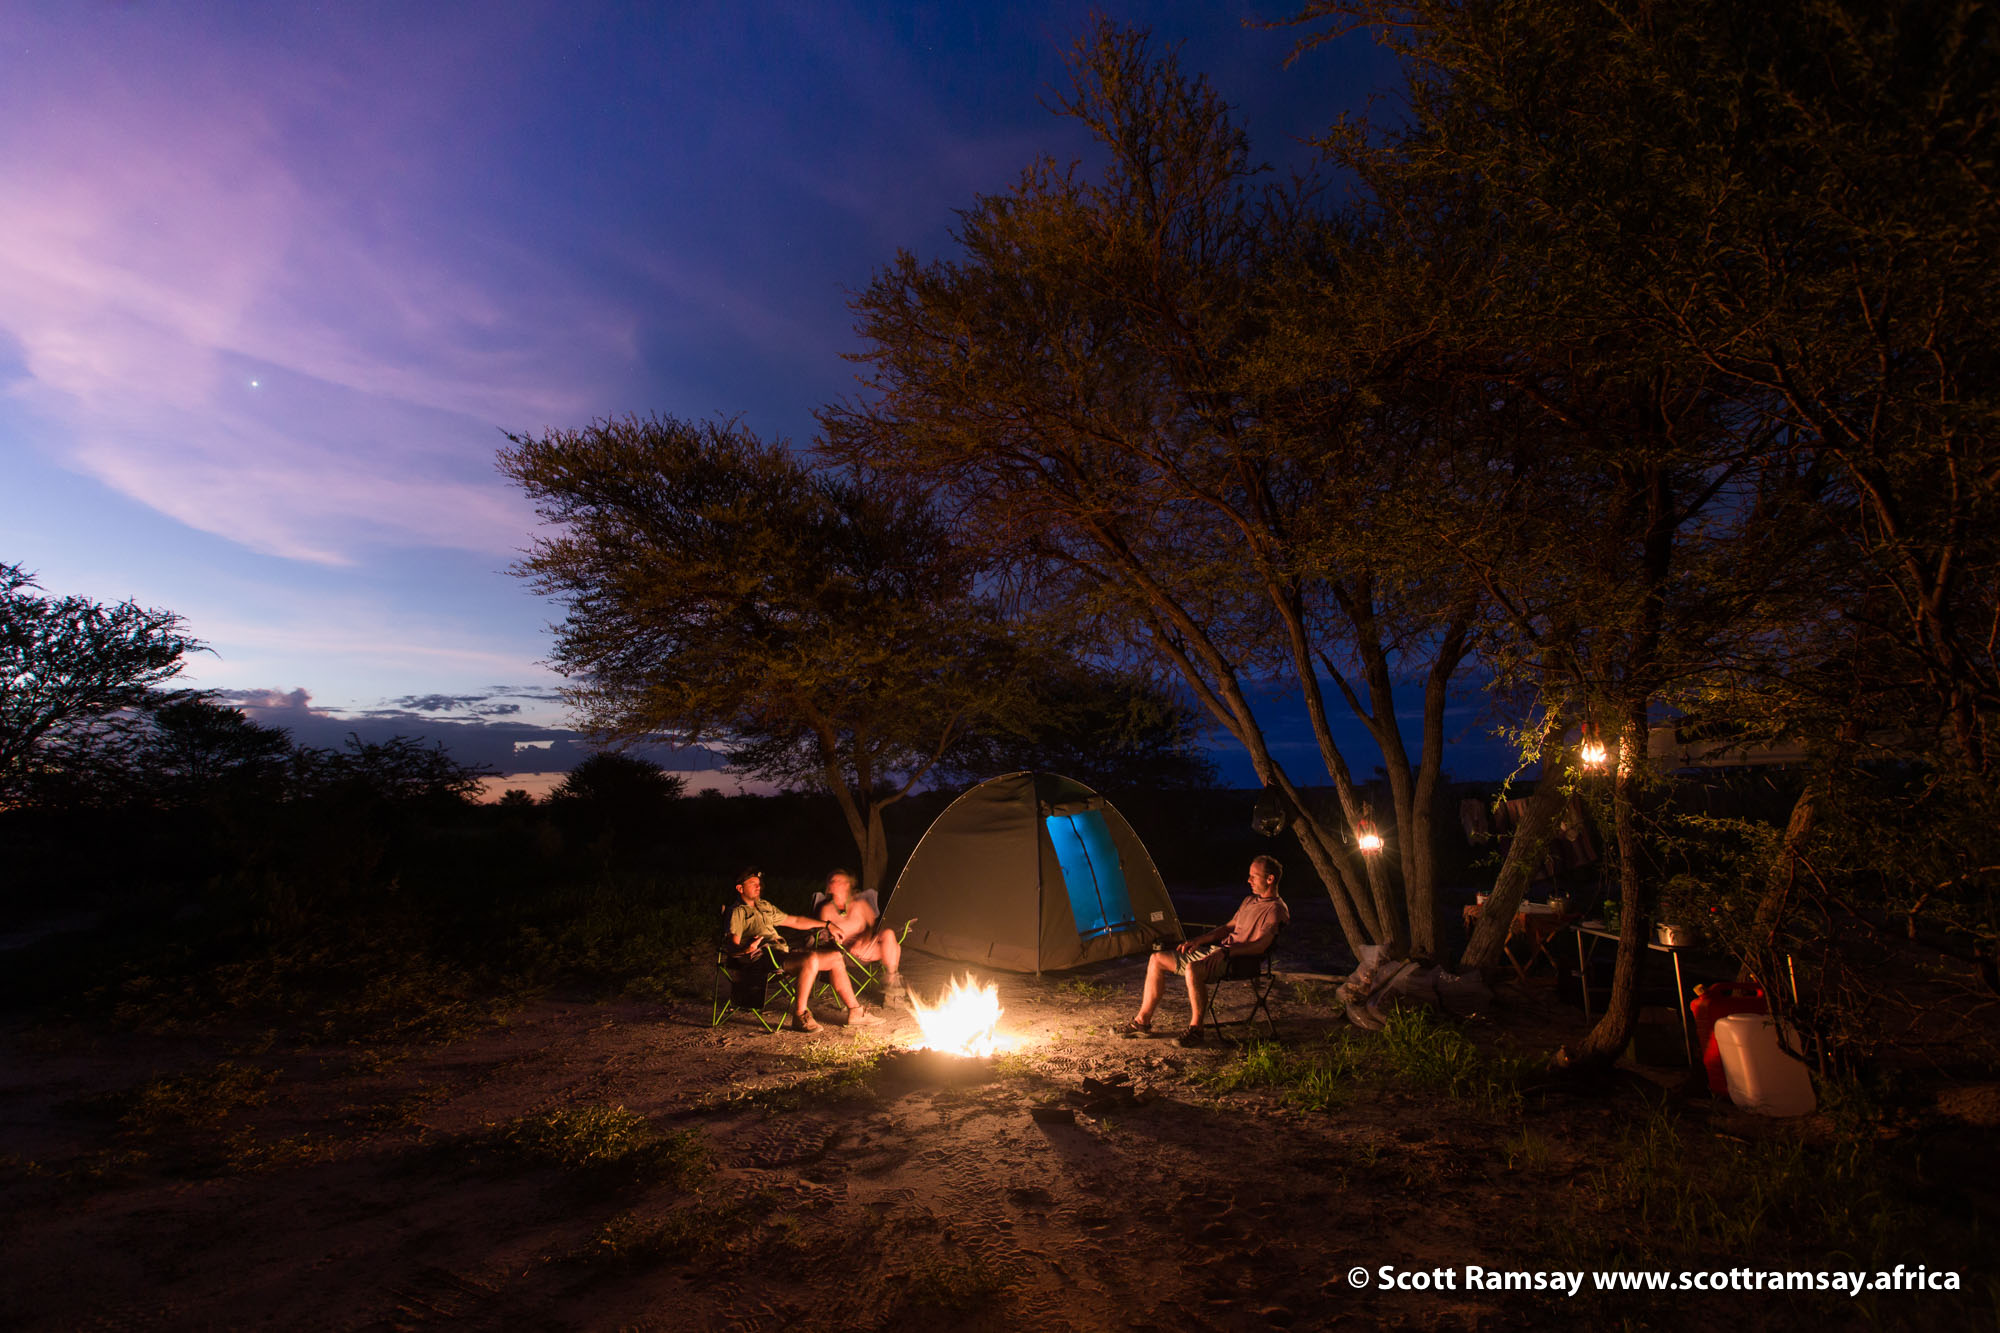 Sitting under a camelthorn tree in the Central Kalahari, next to a fire, with friends, as Venus pops up and the sky turns pscyhedelic with colour. Lions roaring nearby, barn owl screeching in the distance, lamb chops on the braai, and a cold beer in my hand...everything is just fine with the world!